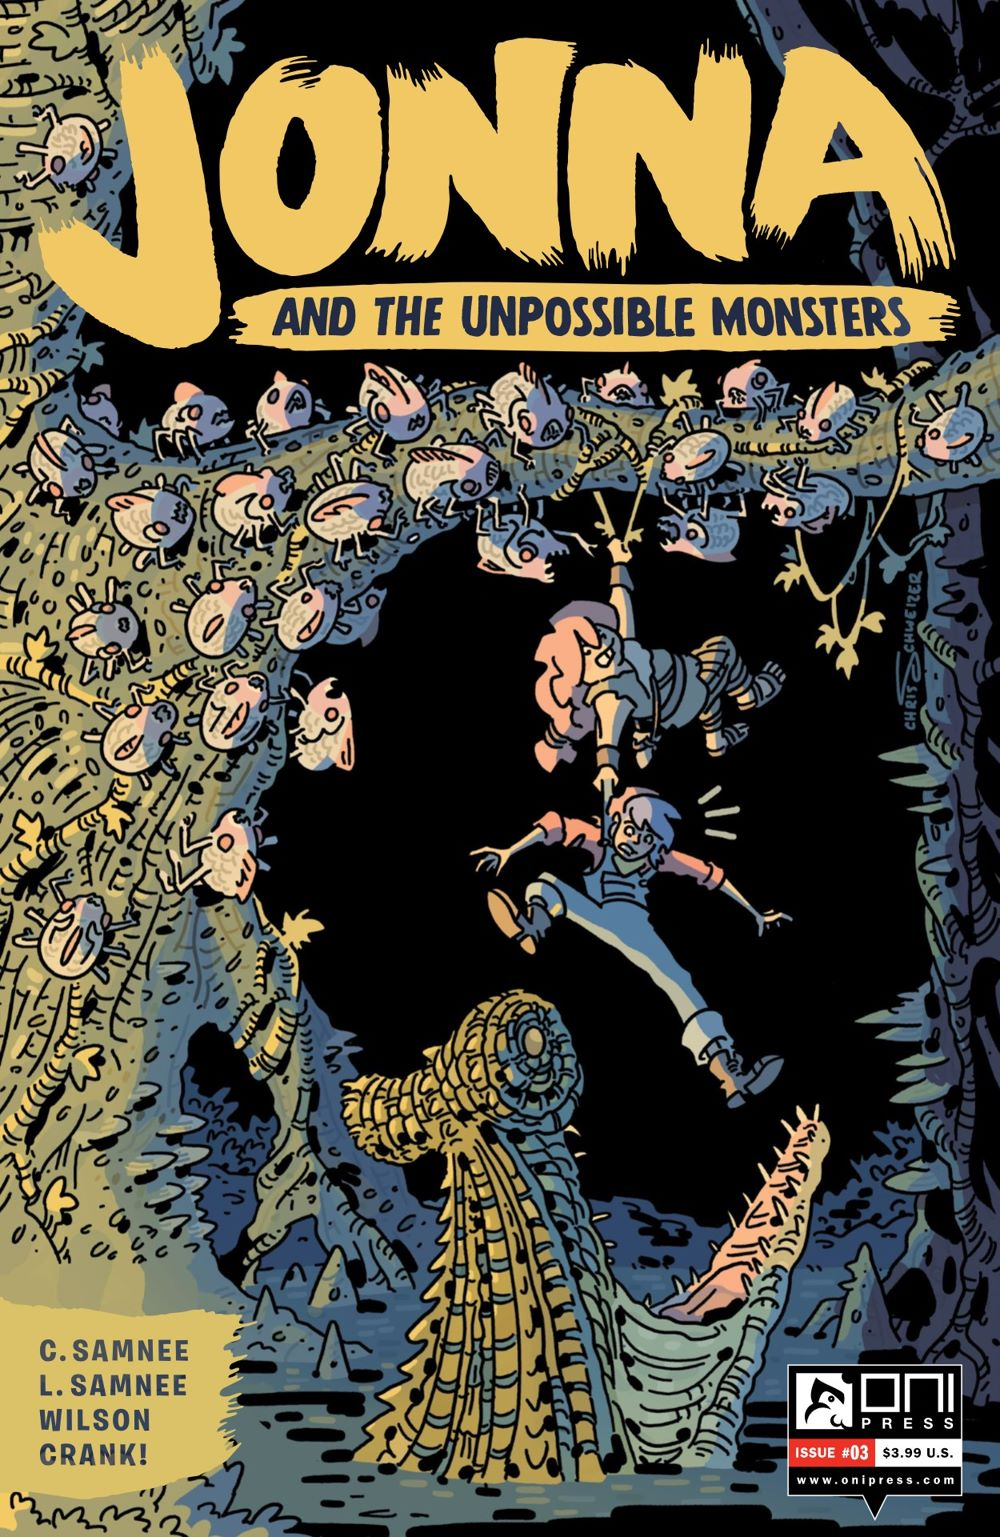 JONNA-3-REFERENCE-02 ComicList Previews: JONNA AND THE UNPOSSIBLE MONSTERS #3